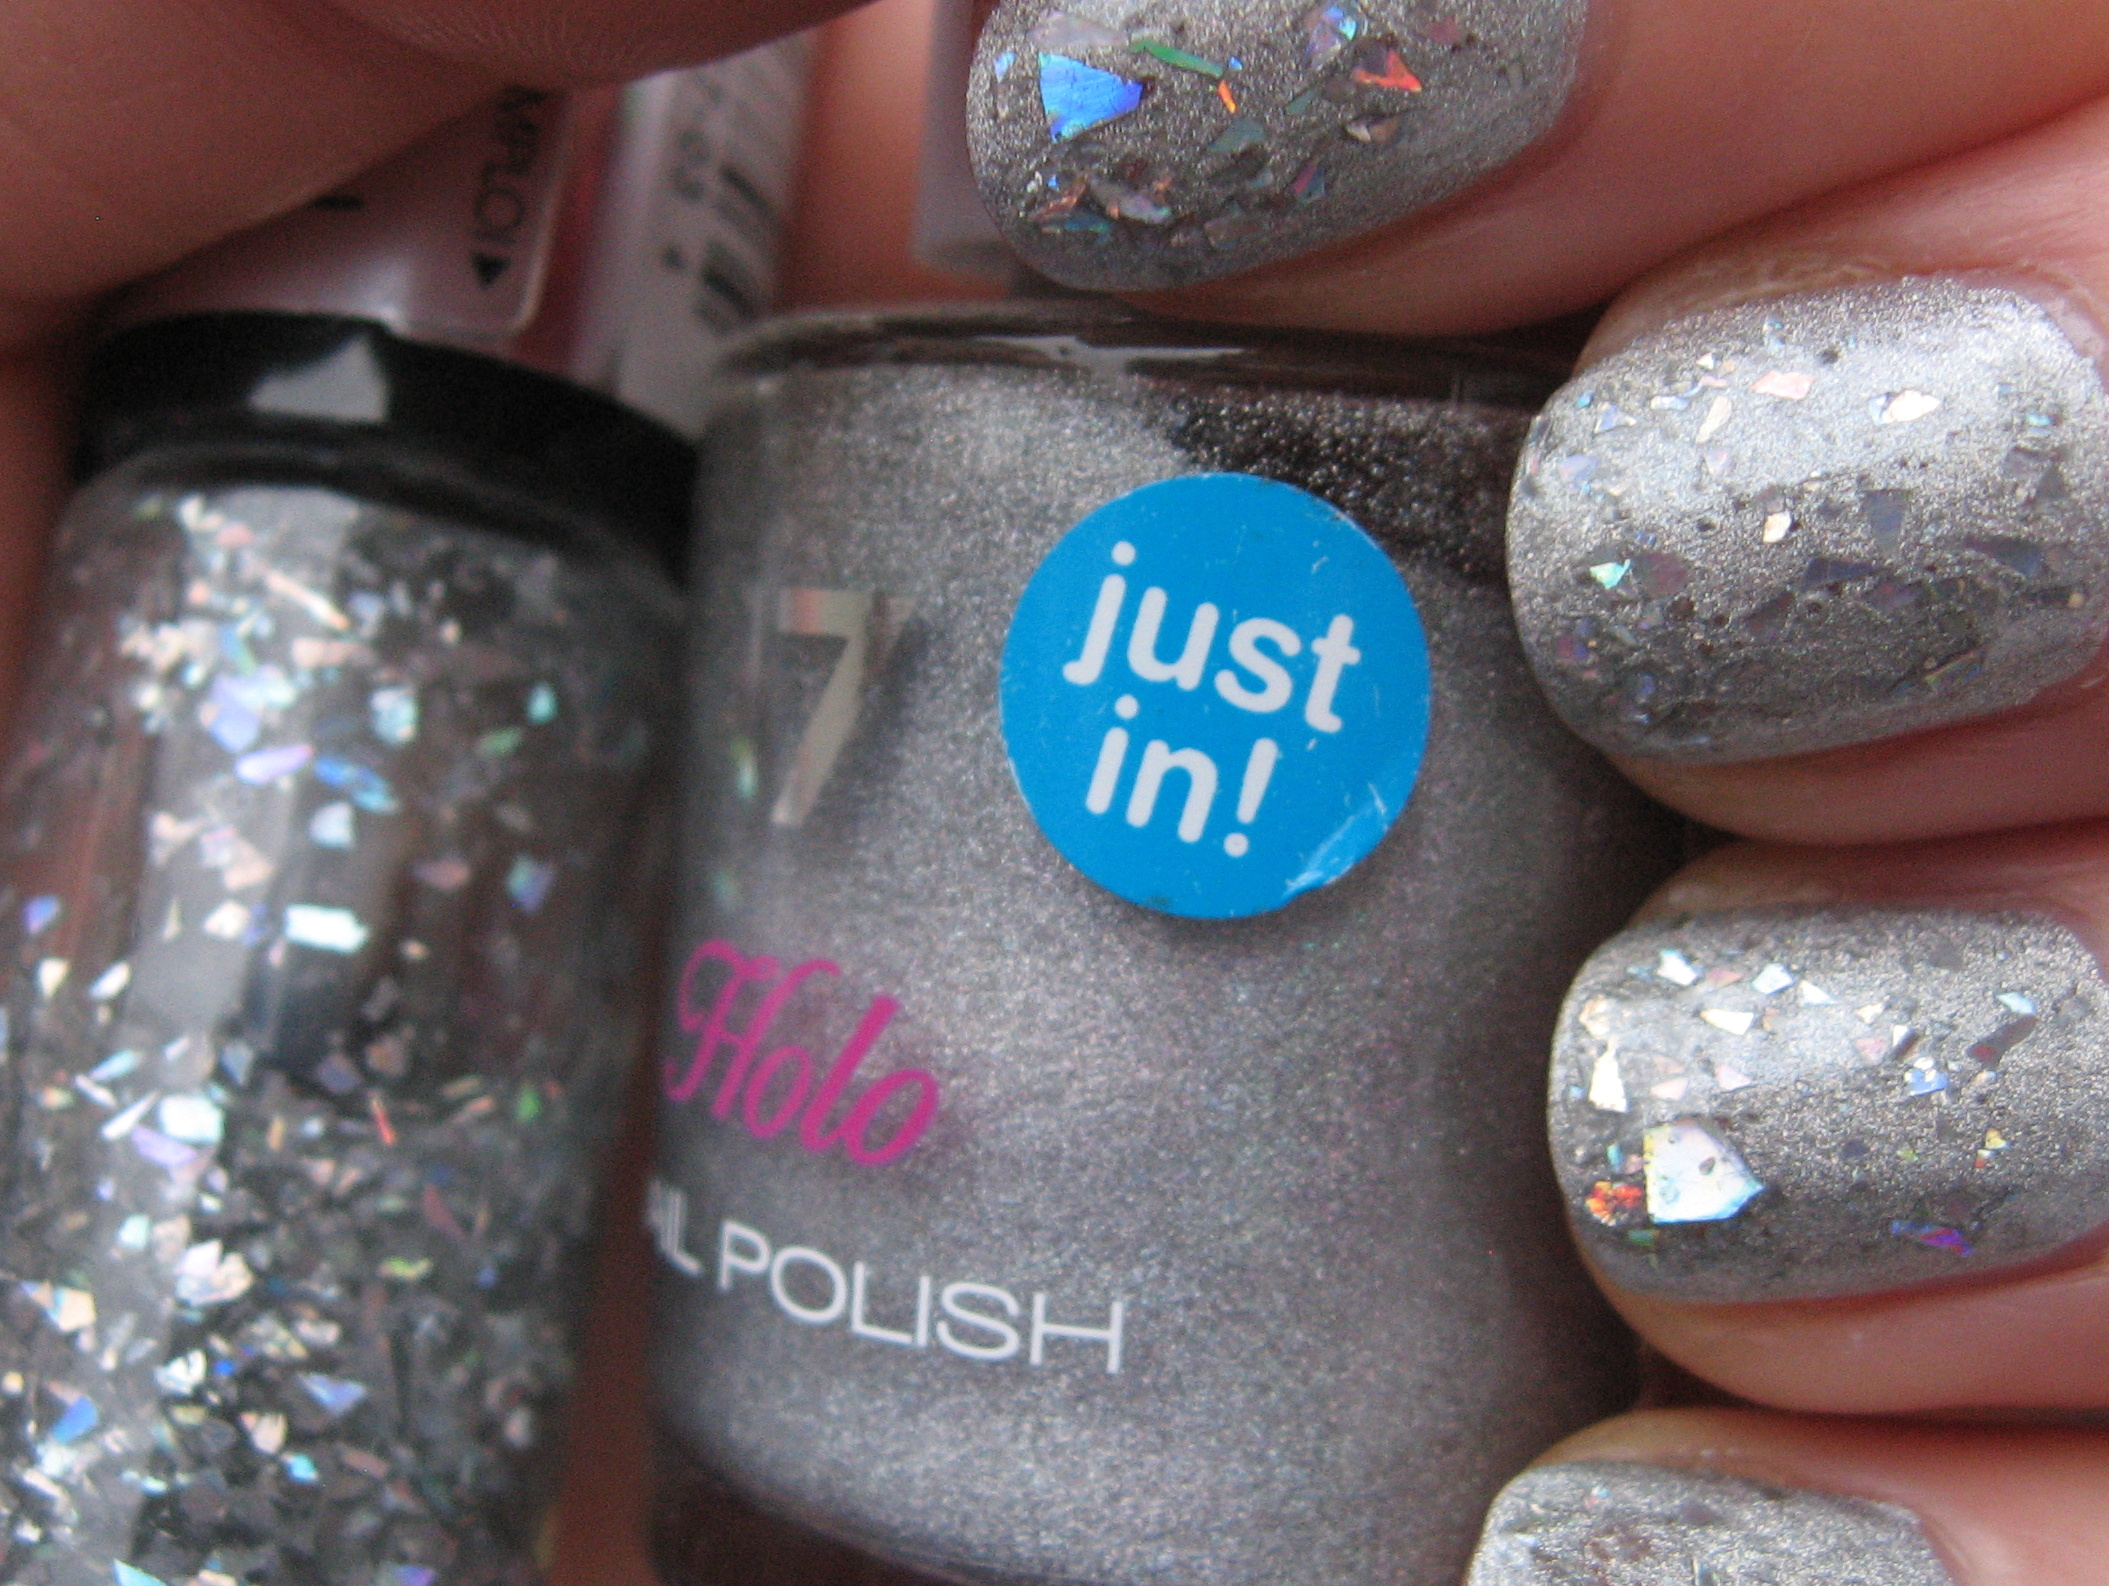 17 Holo Silver with Revlon Moon Candy 'Milky Way' nail polishes ...